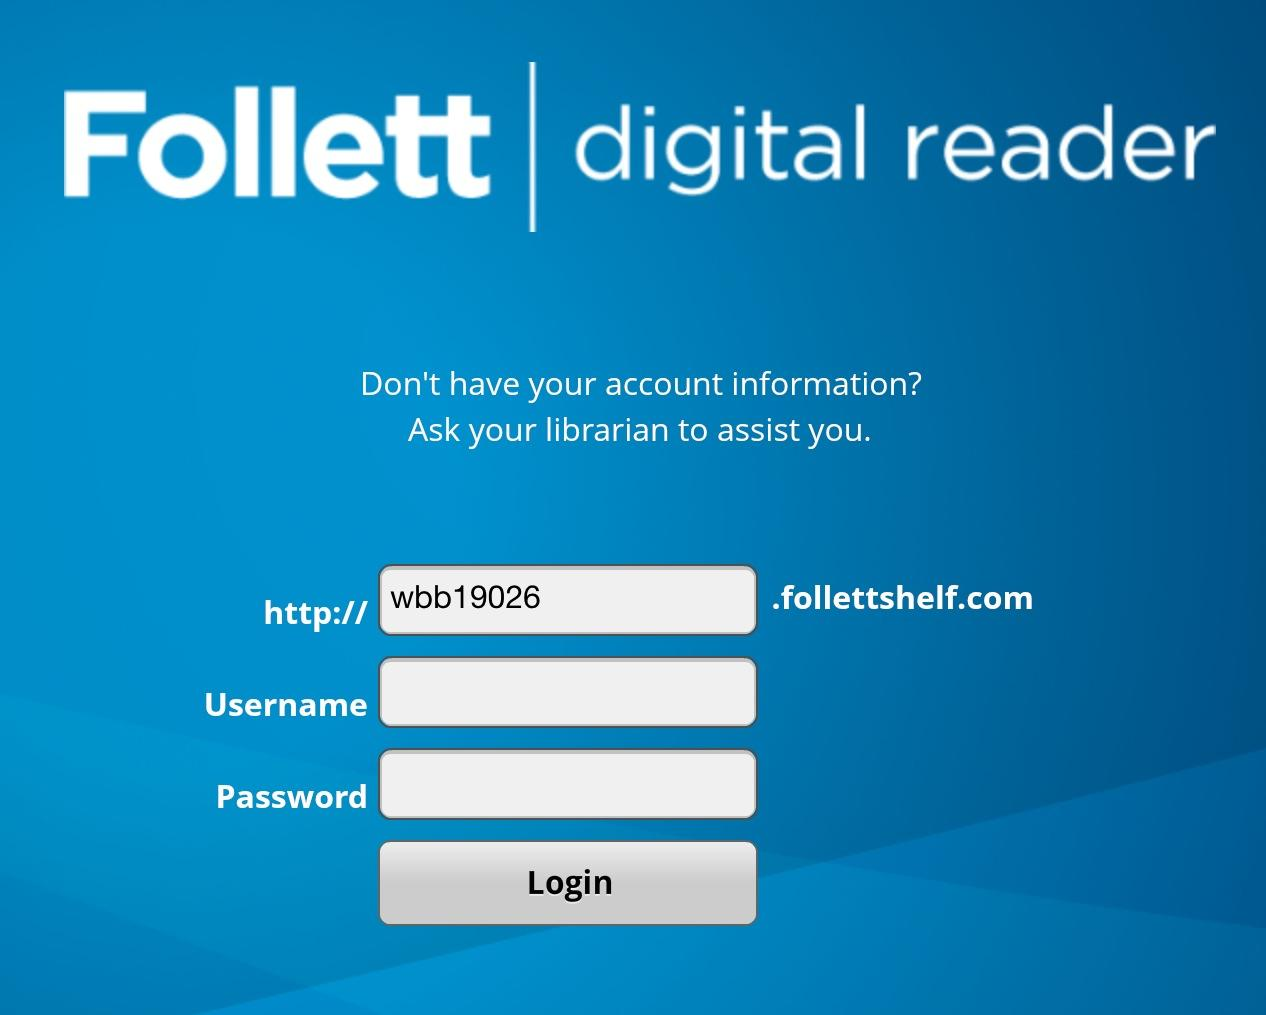 The district login code is needed as pictured above to access the online library.